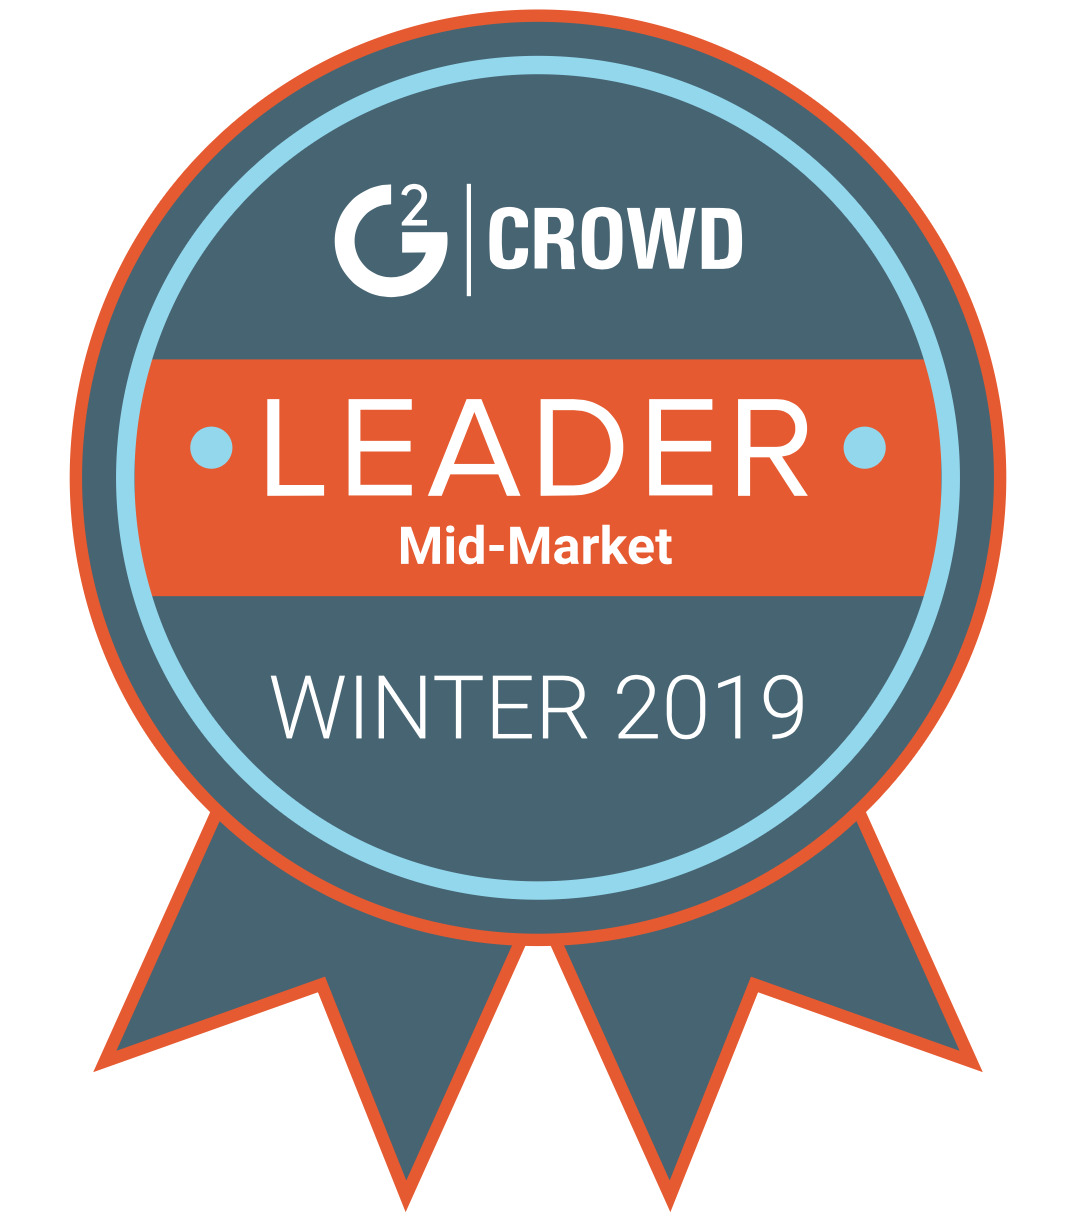 G2 Crowd Winter 2018 EDI Leader Badge